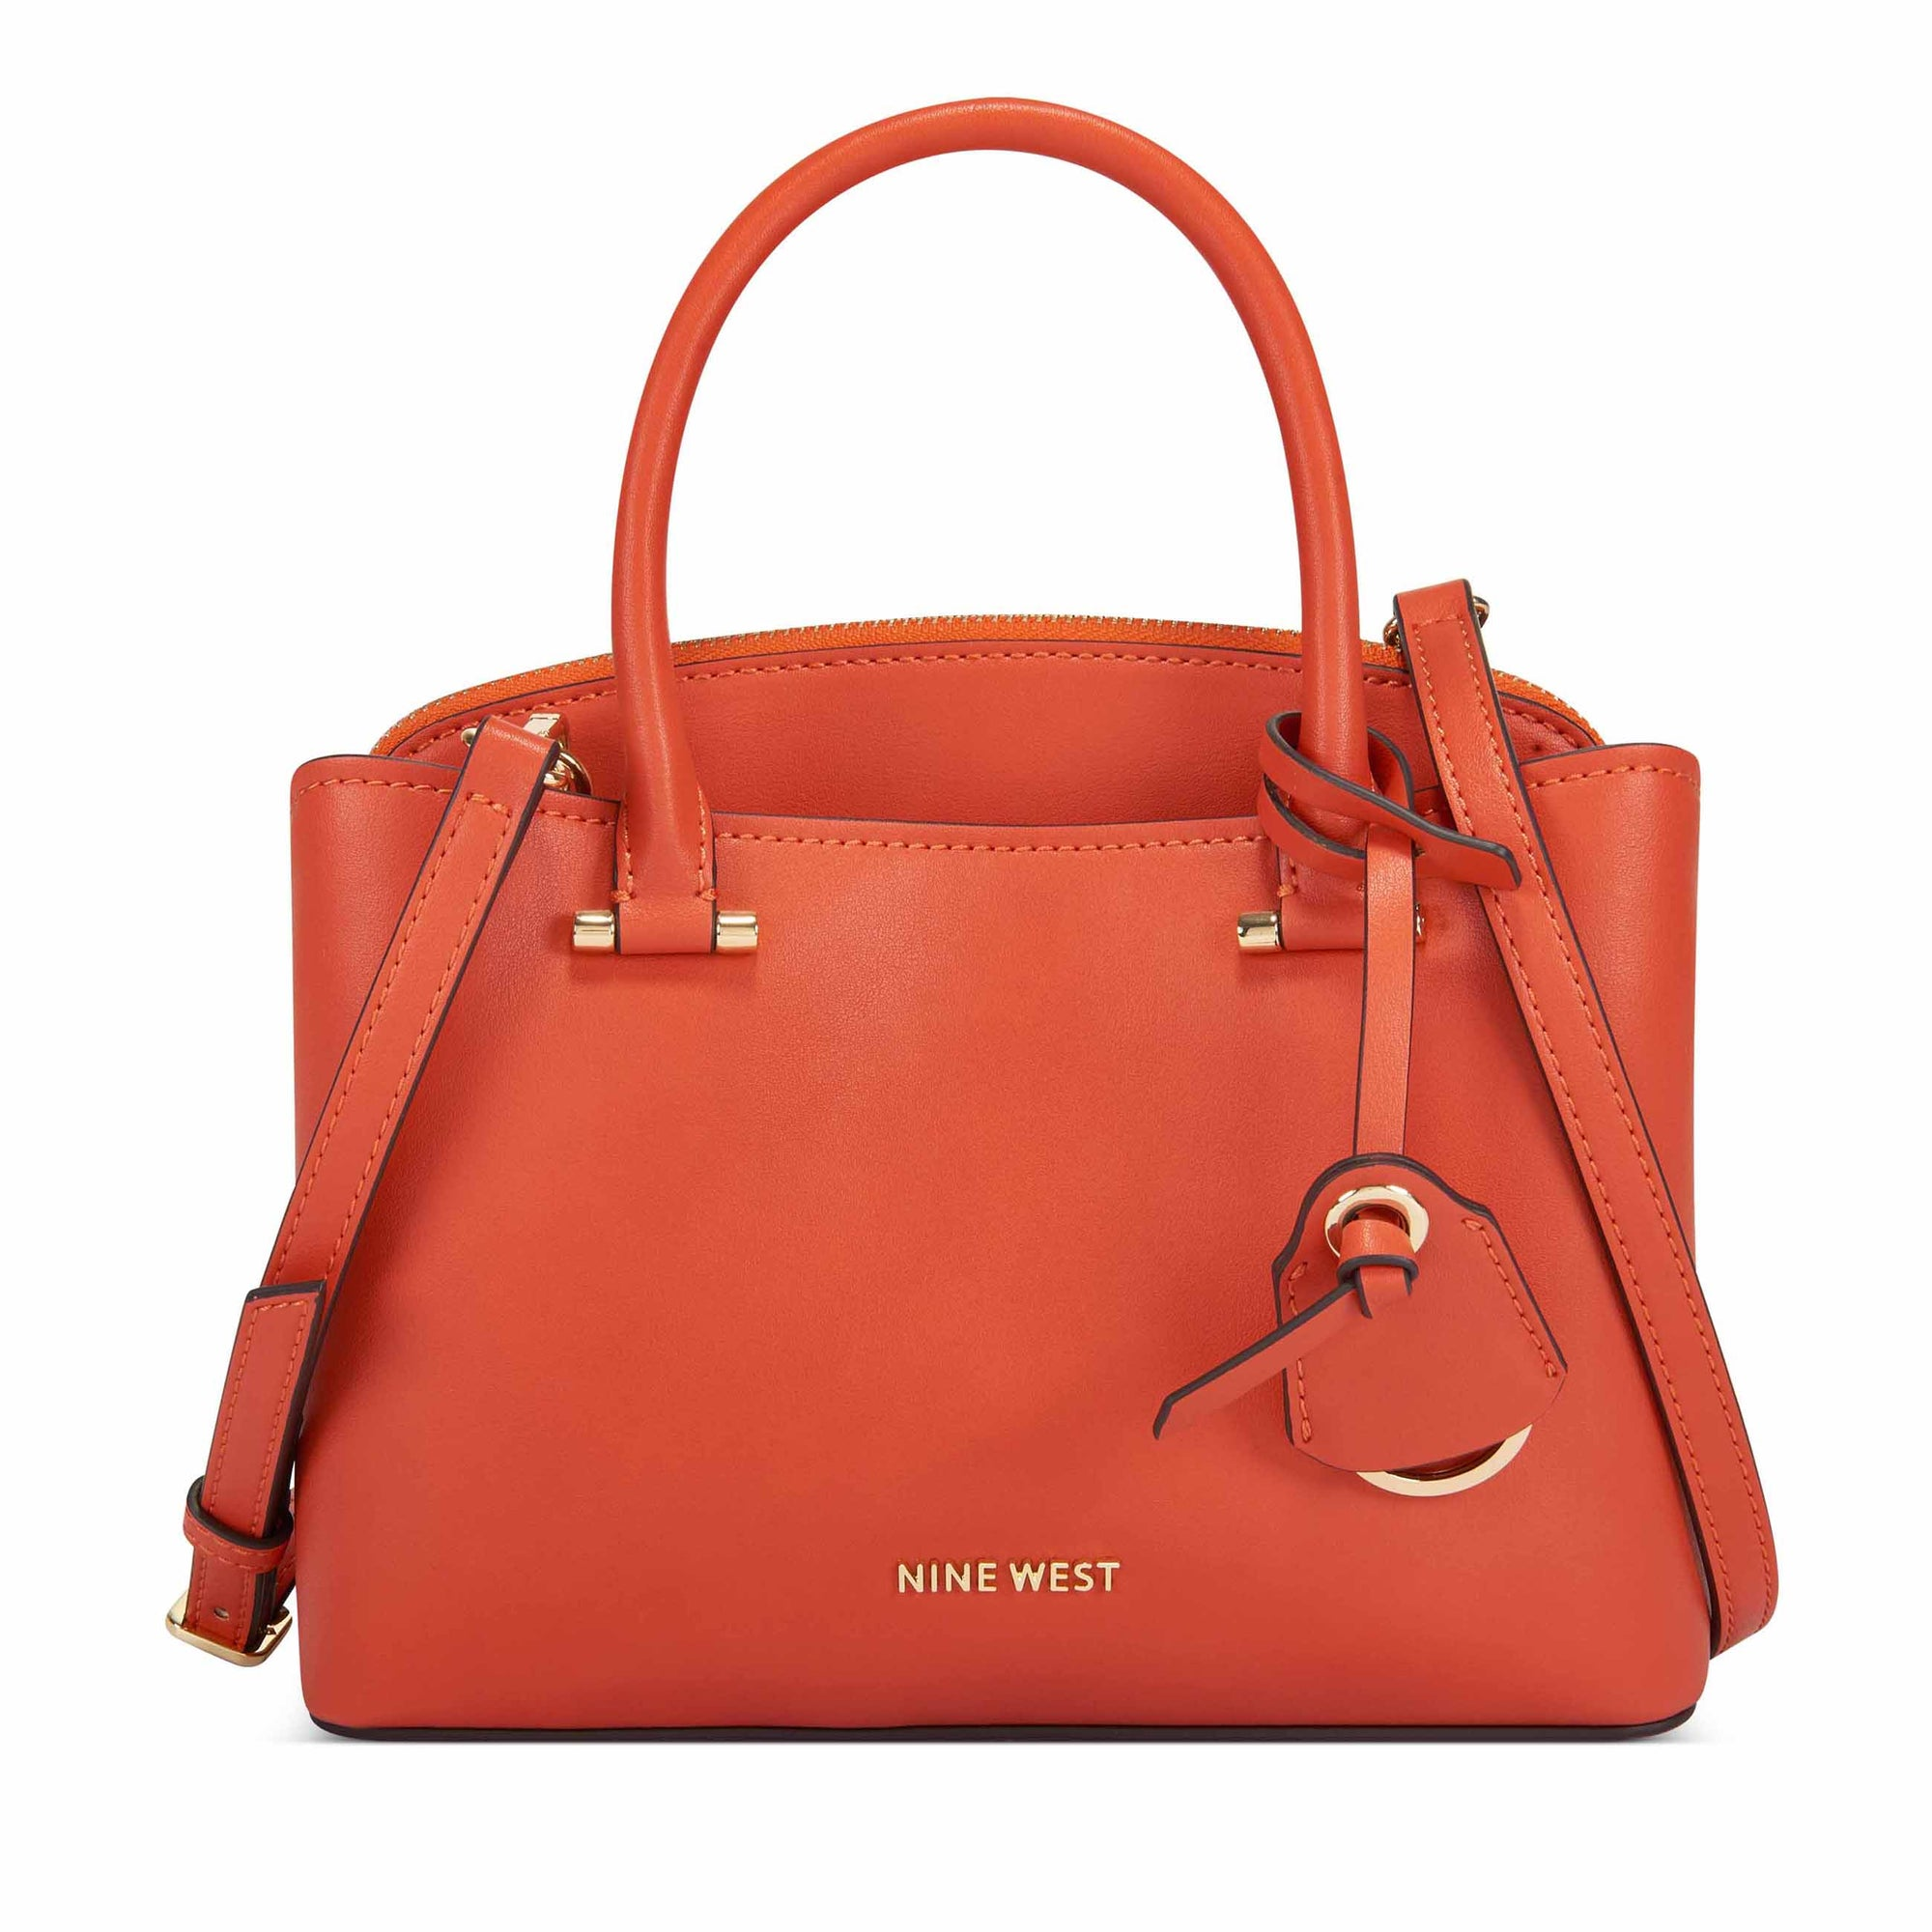 eloise-small-jet-set-satchel-in-tropic-orange